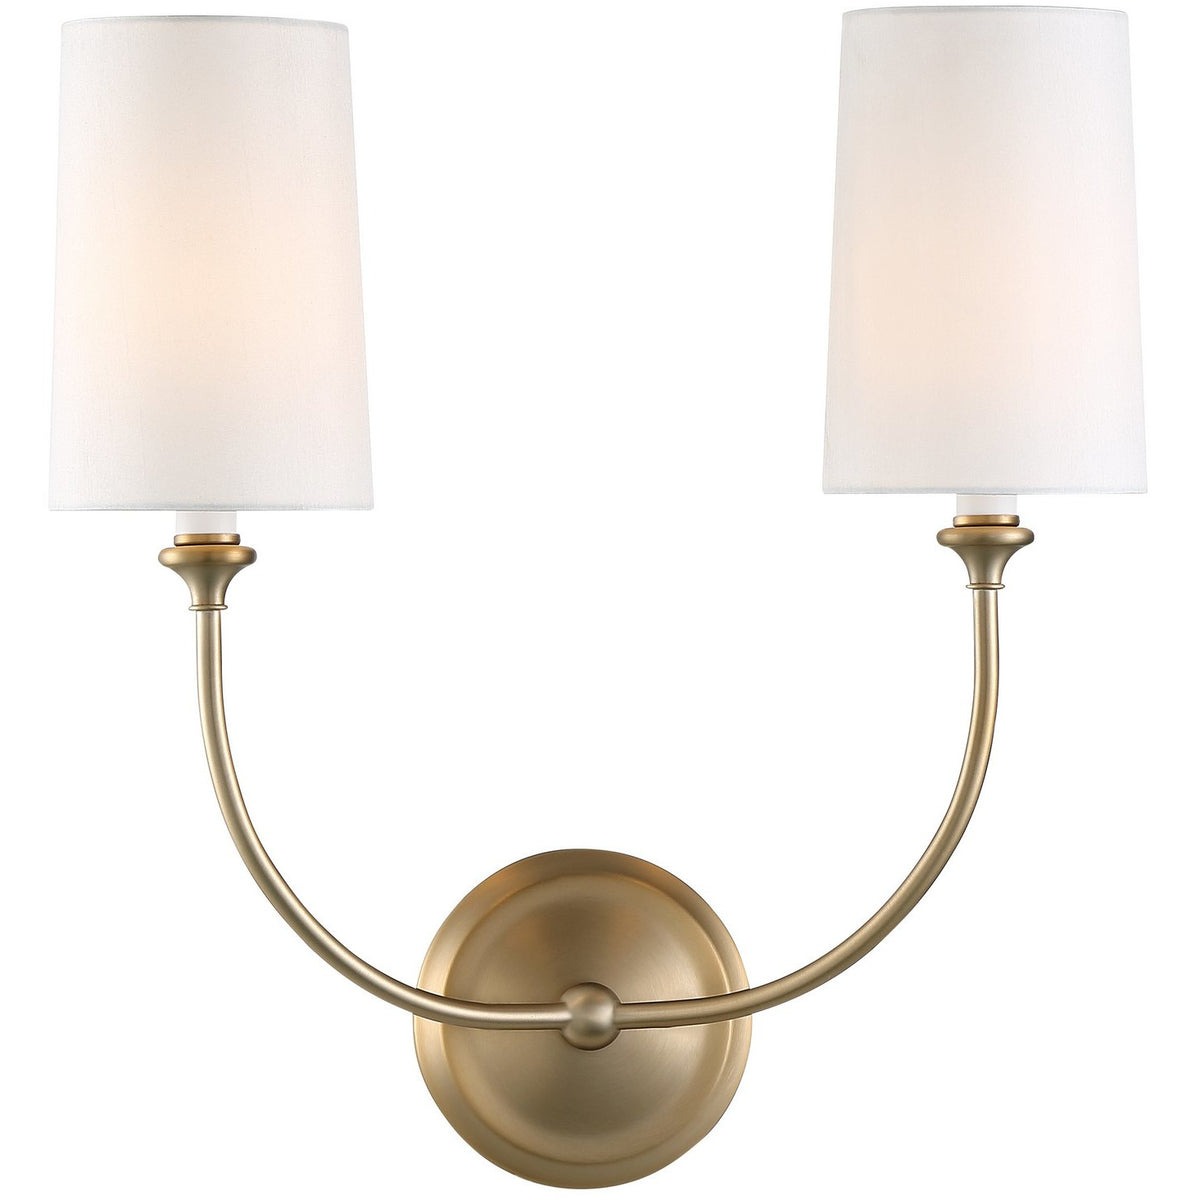 Crystorama - 2242-VG - Two Light Wall Mount - Sylvan - Vibrant Gold